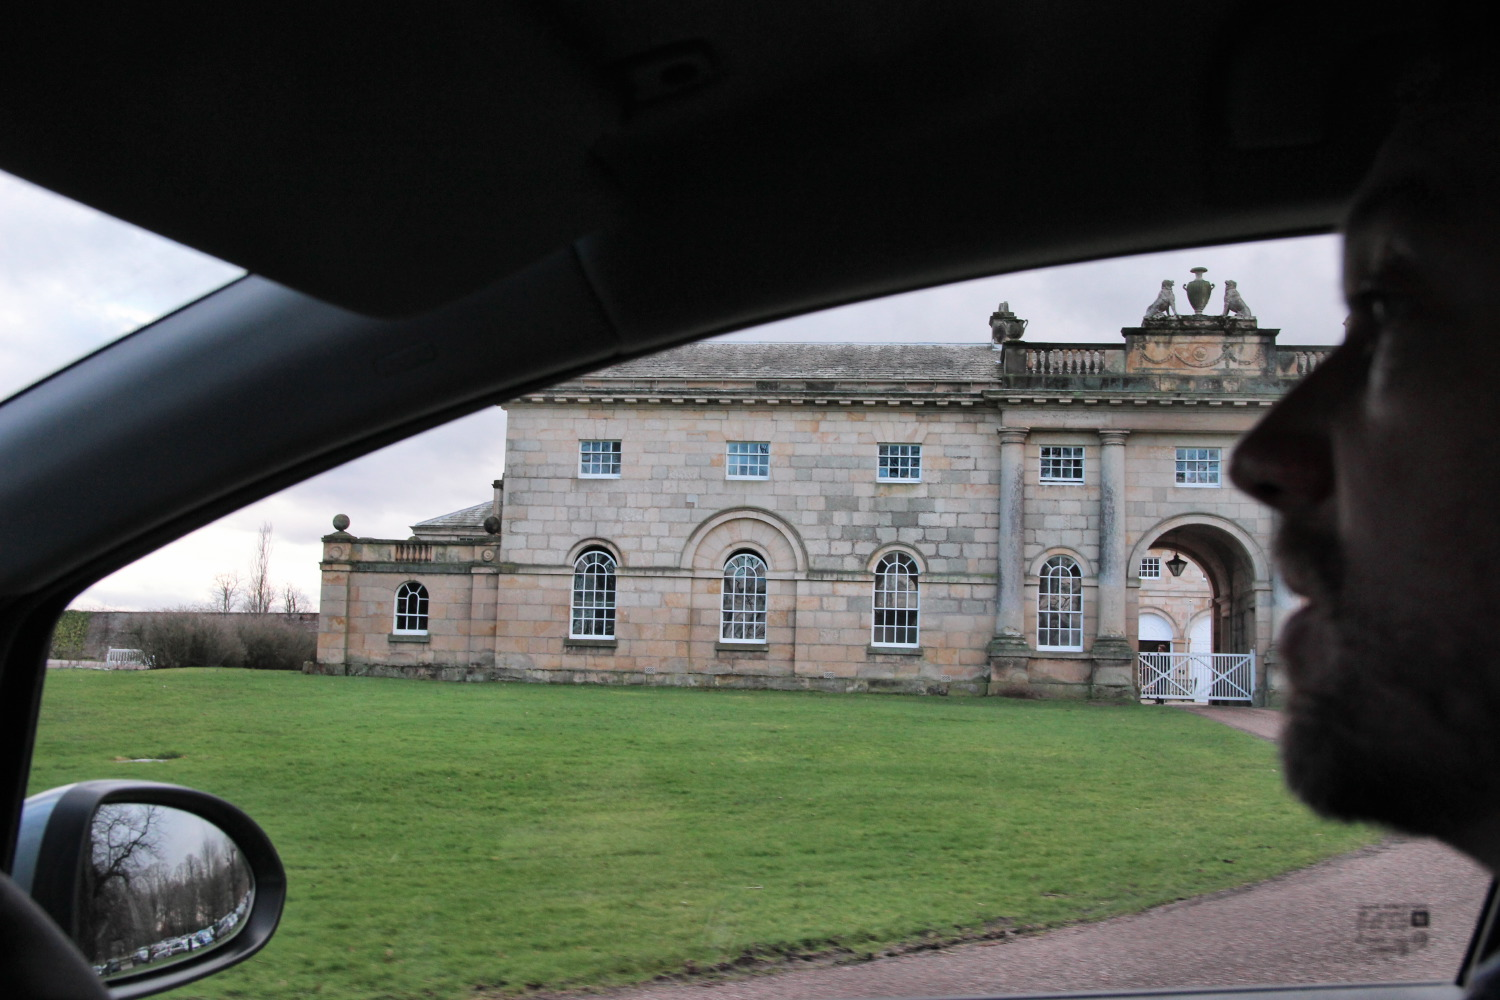 Driving up to Castle Howard, Feb 20th 2014